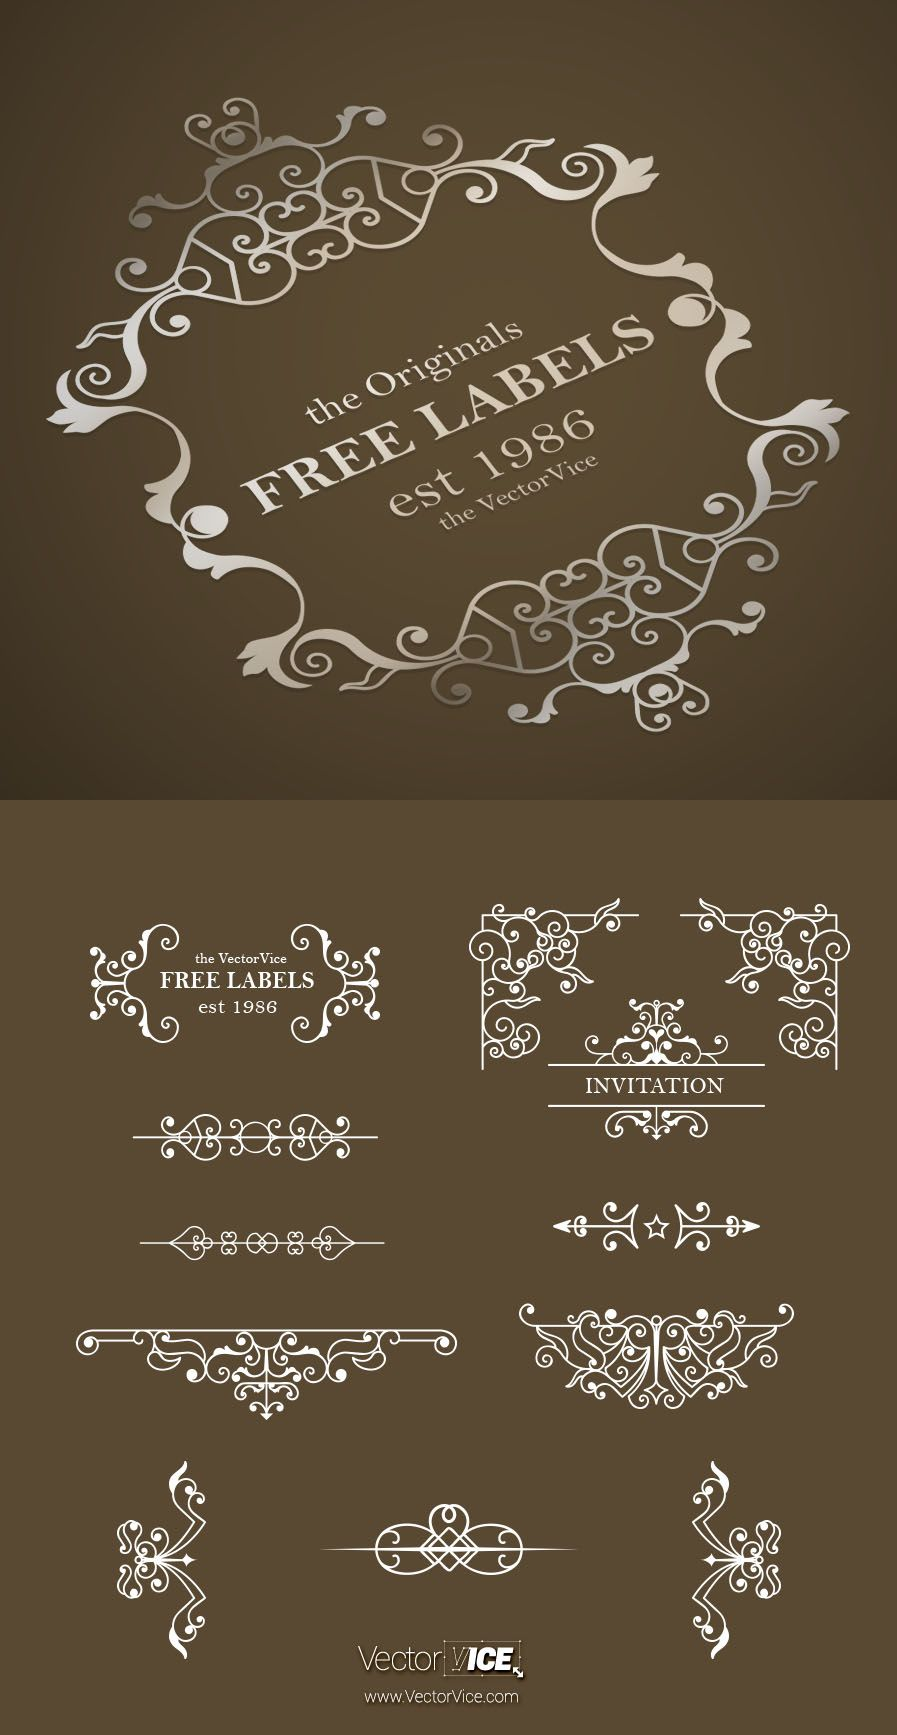 Download free vintage ornaments vintage ornaments and iders - Download Free Vintage Ornaments Vintage Ornaments And Dividers Calligraphic Design Elements And Page Decoration